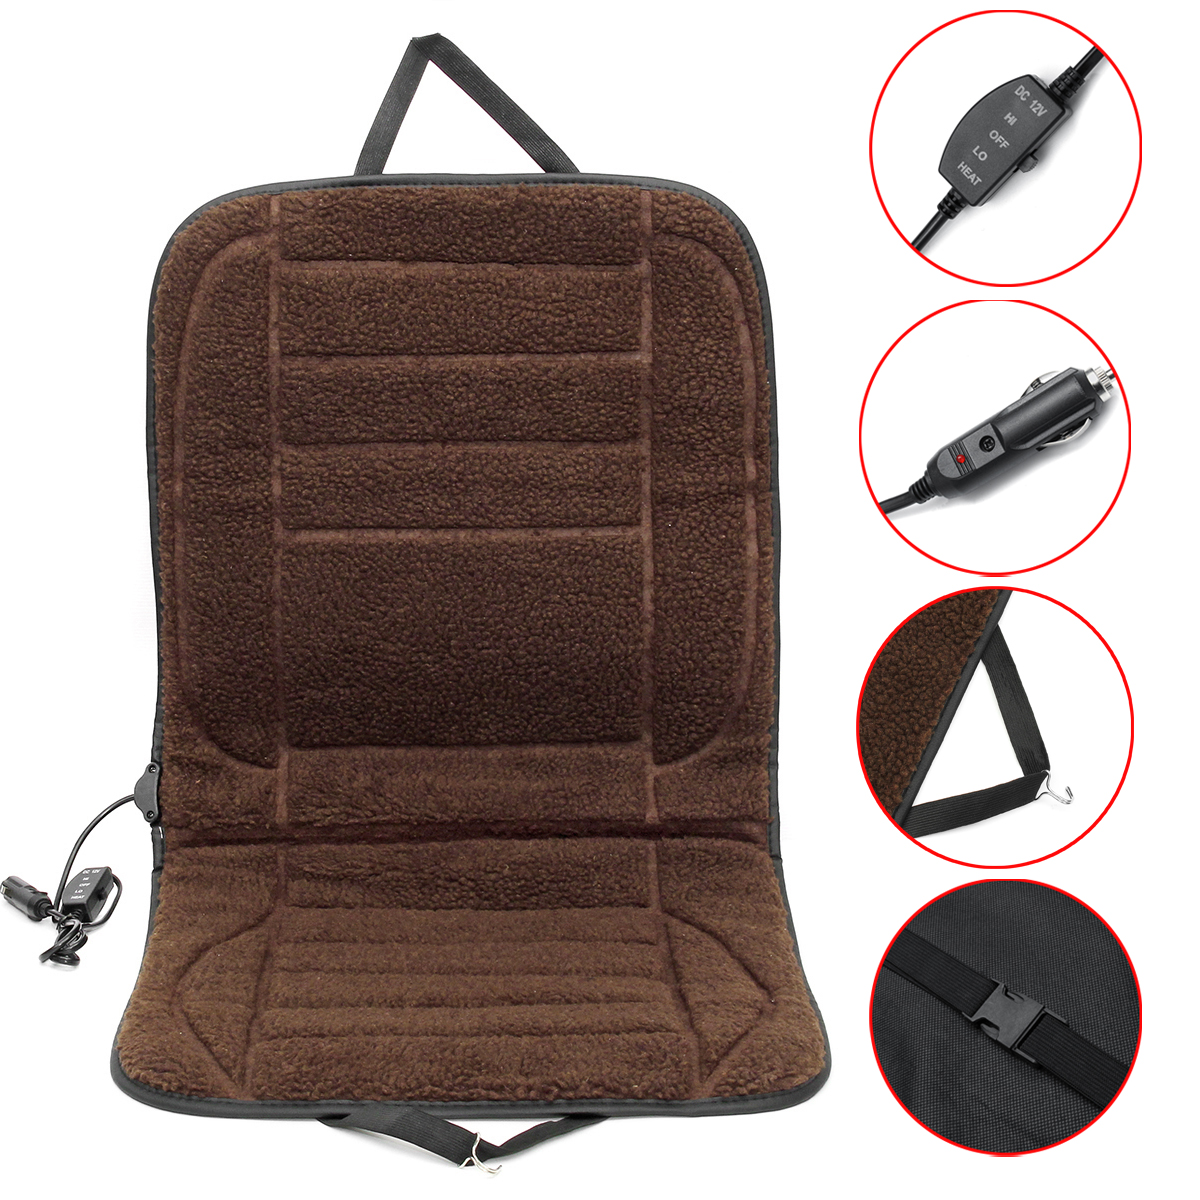 12V Car Van Front Seat Heated Cushion Seat Warmer Winter Household Cover Electric Heating Mat Brown